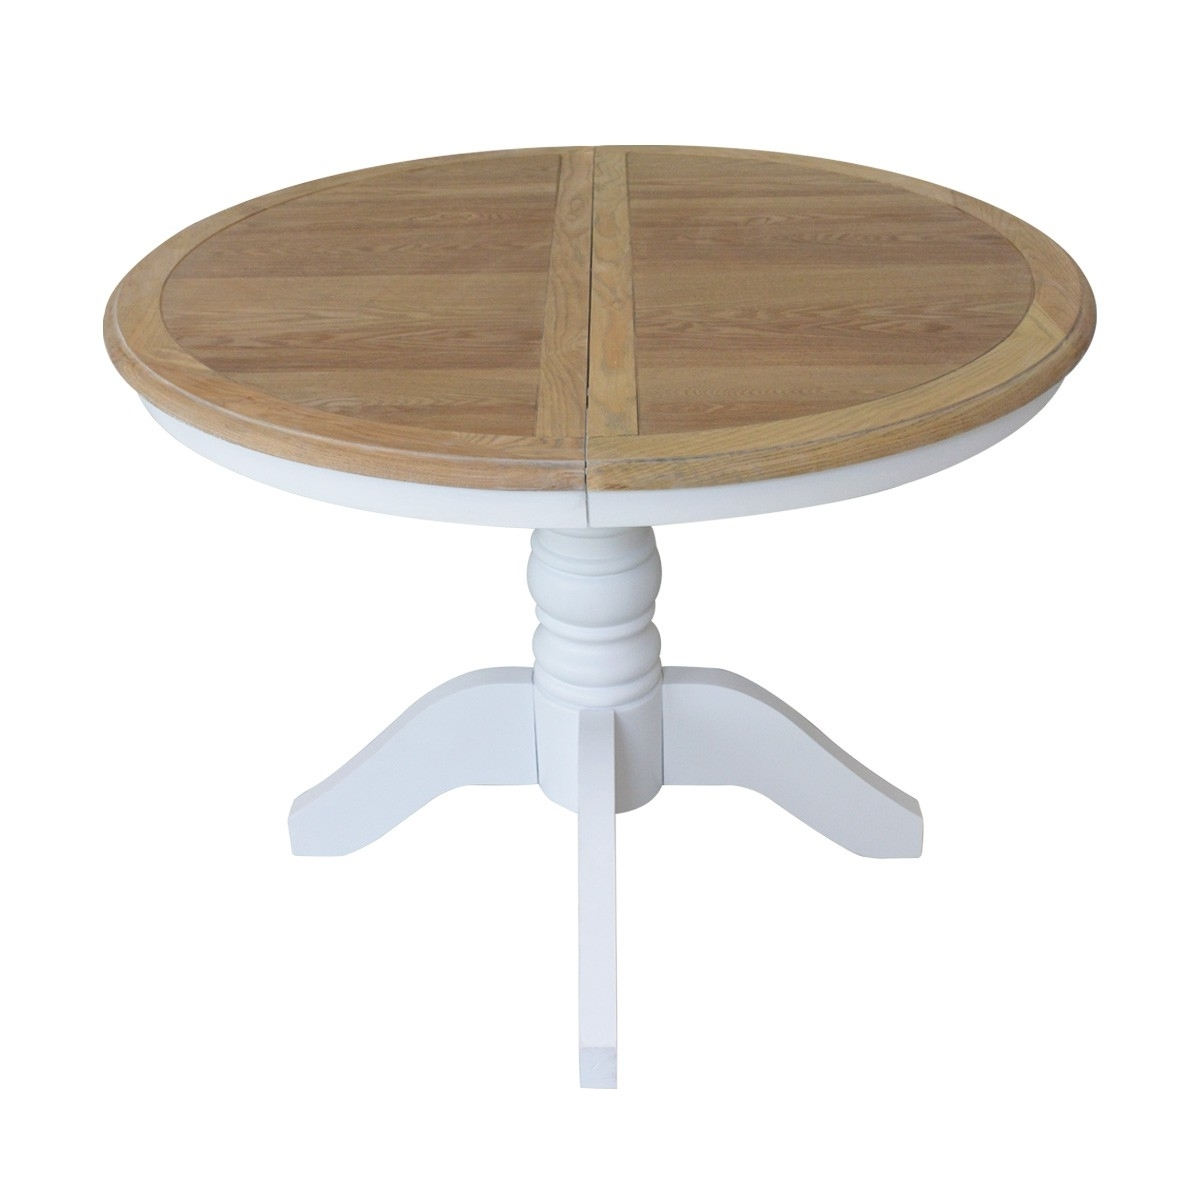 Well Liked French Provincial Classic White Extendable Round Dining Table With For Round White Extendable Dining Tables (View 19 of 25)